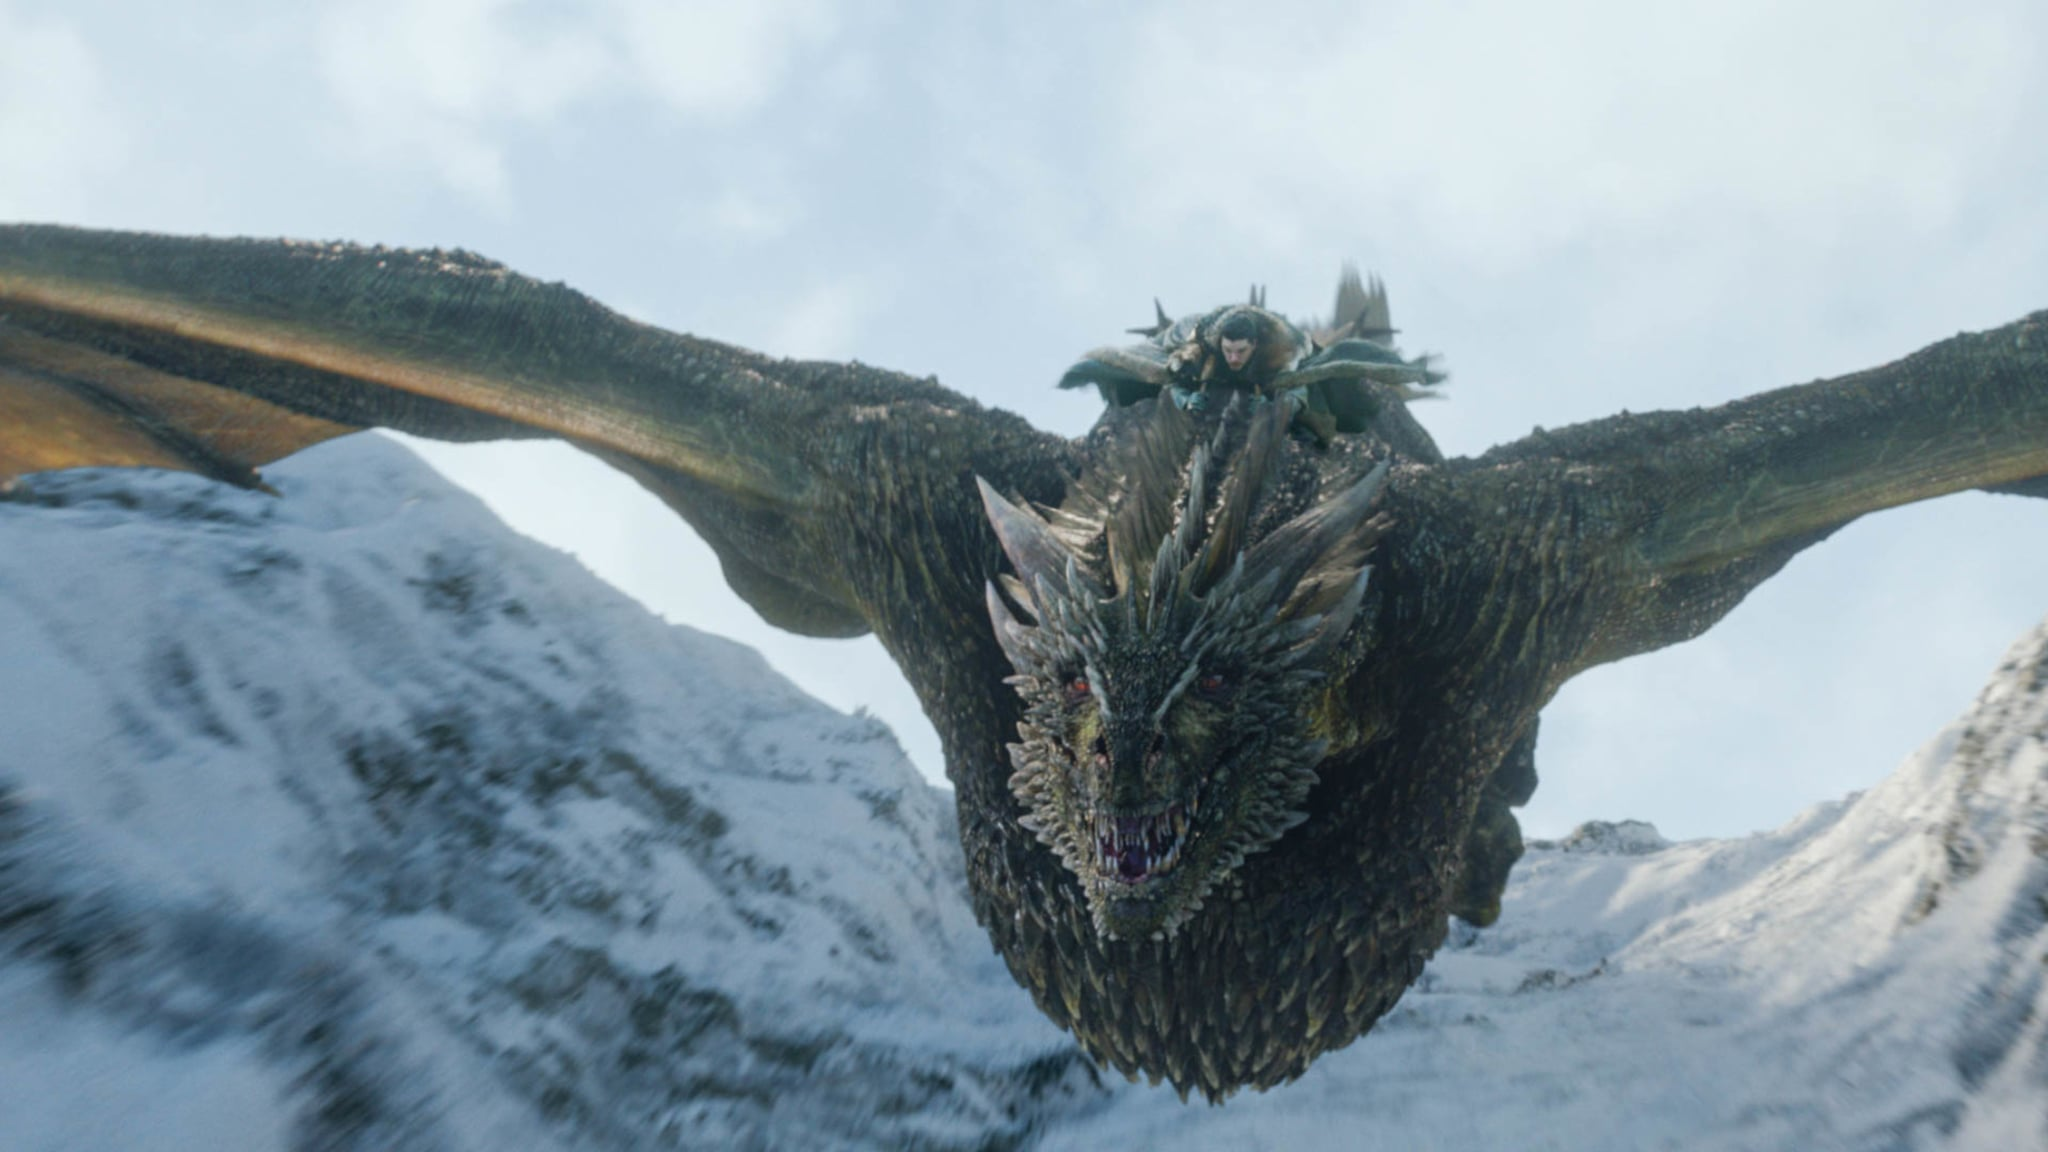 Game of Thrones Rhaegal